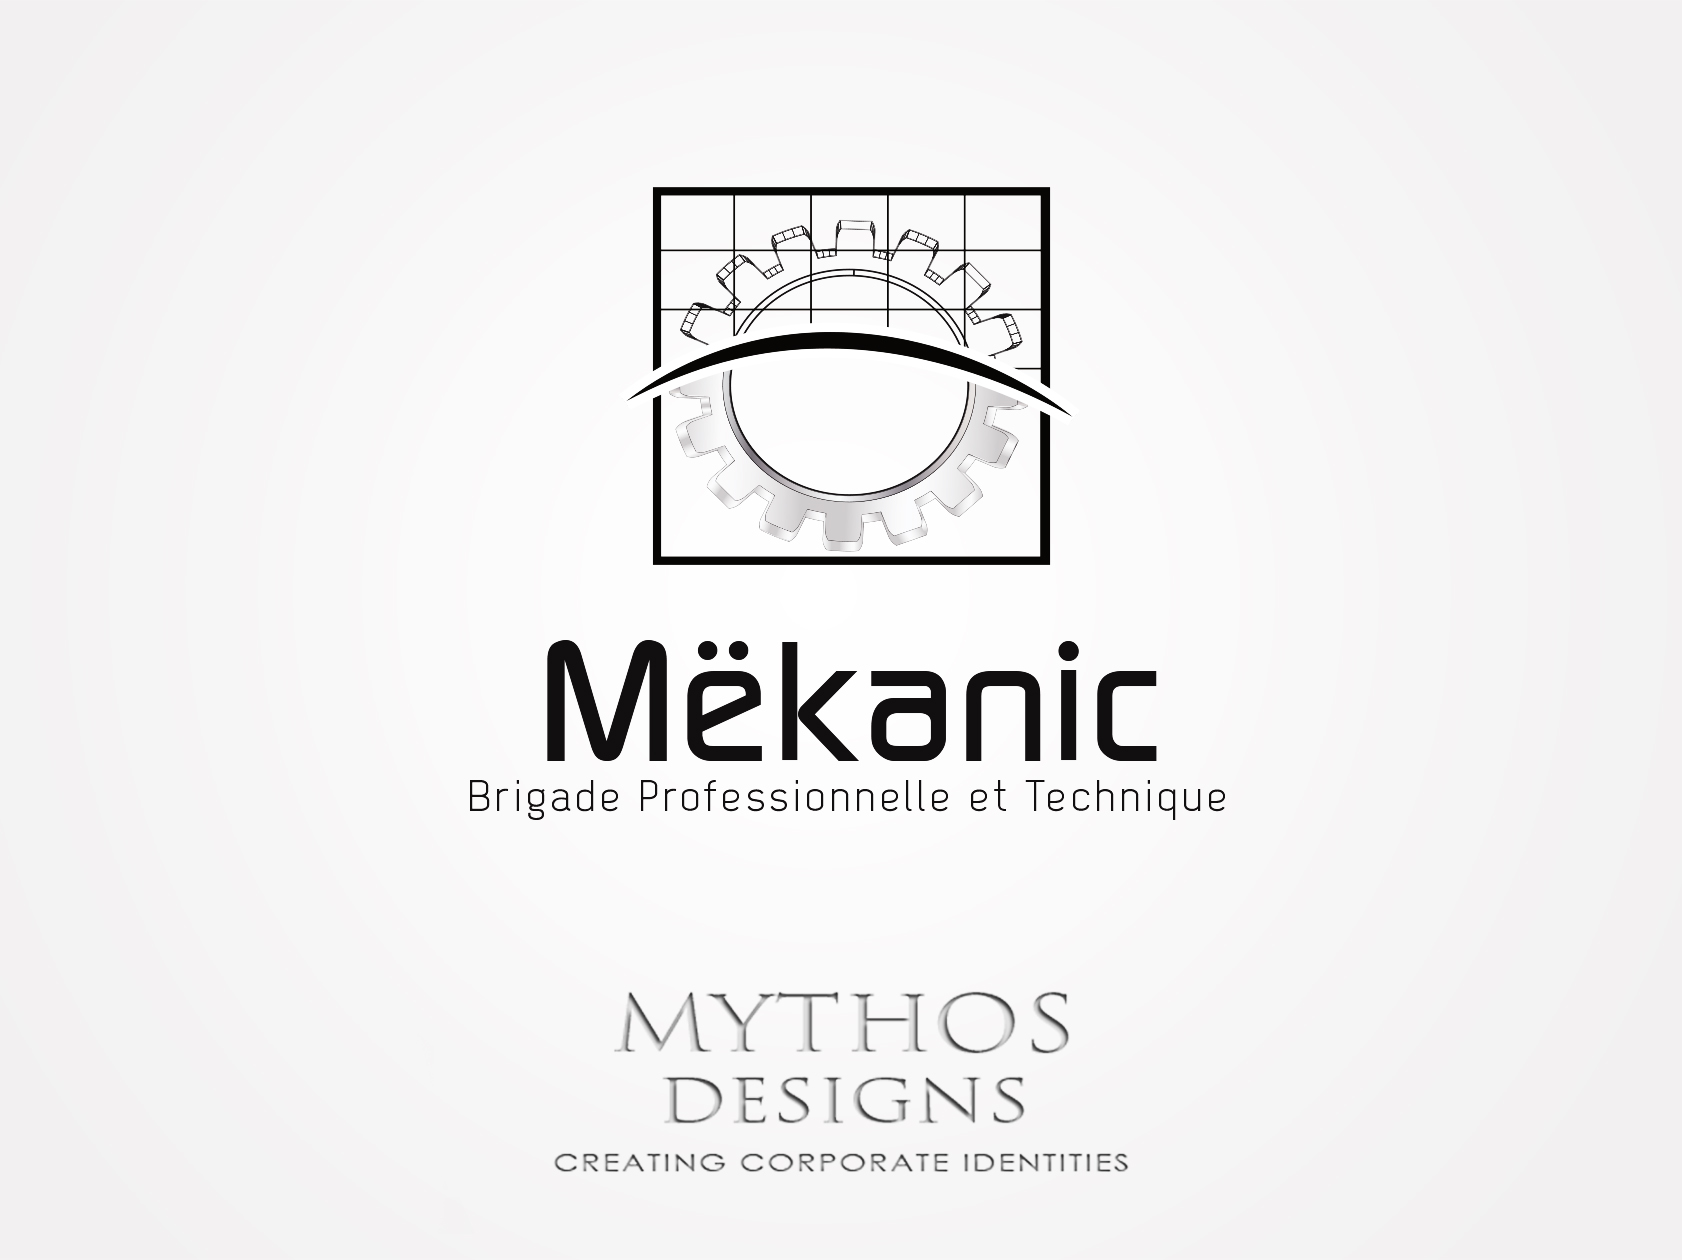 Logo Design by Mythos Designs - Entry No. 202 in the Logo Design Contest Creative Logo Design for MËKANIC - Professional and technical squad.